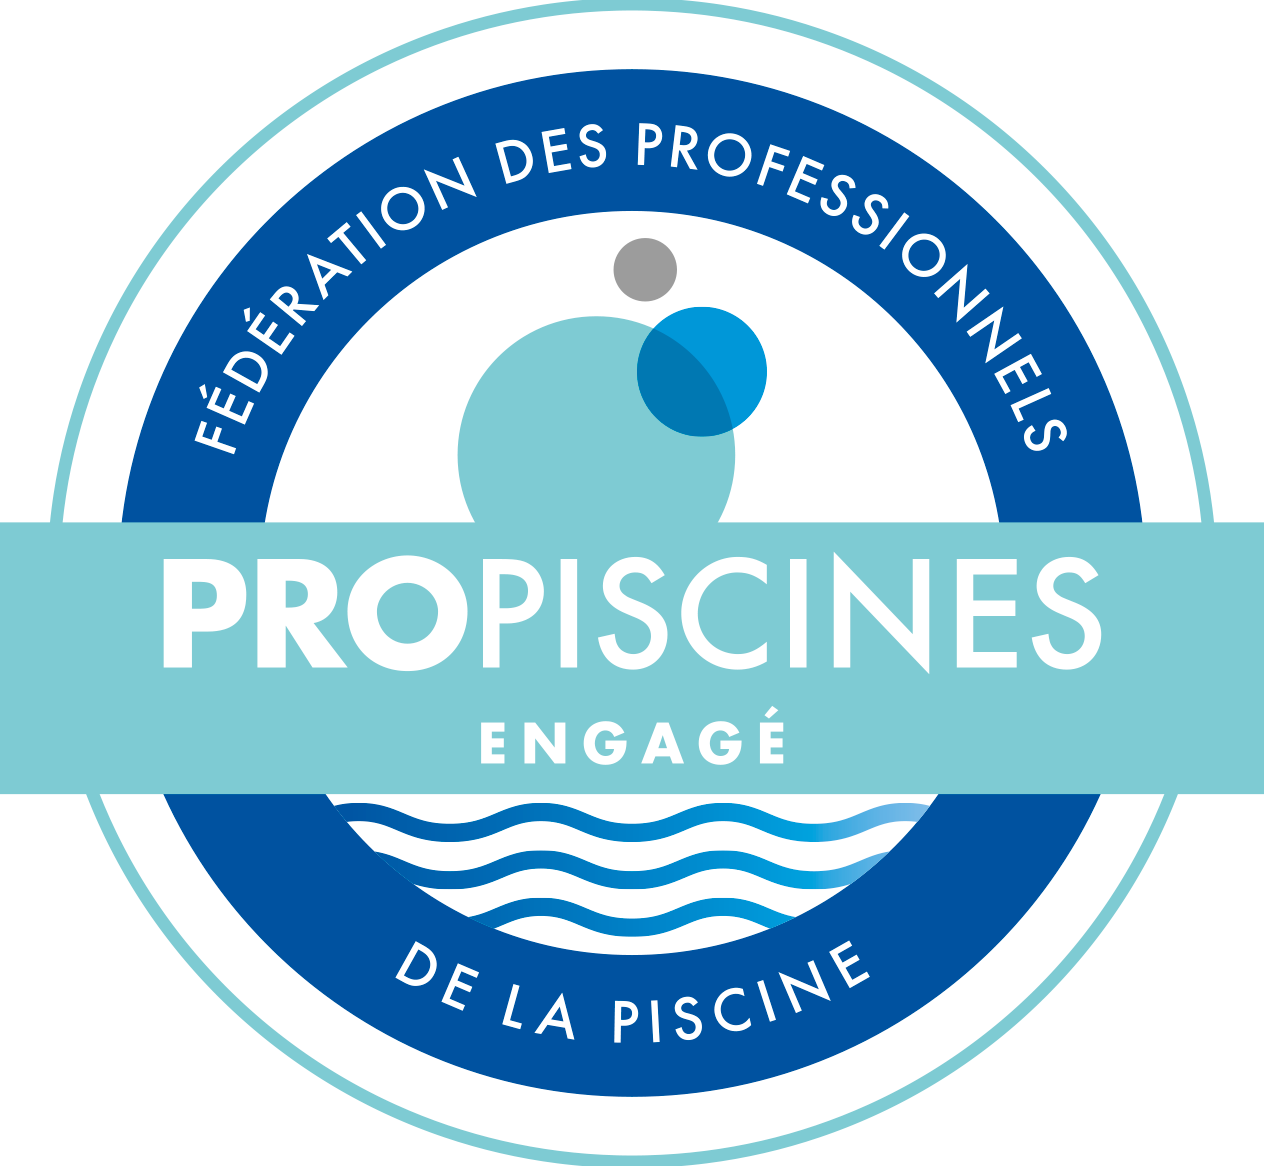 Propiscines Label